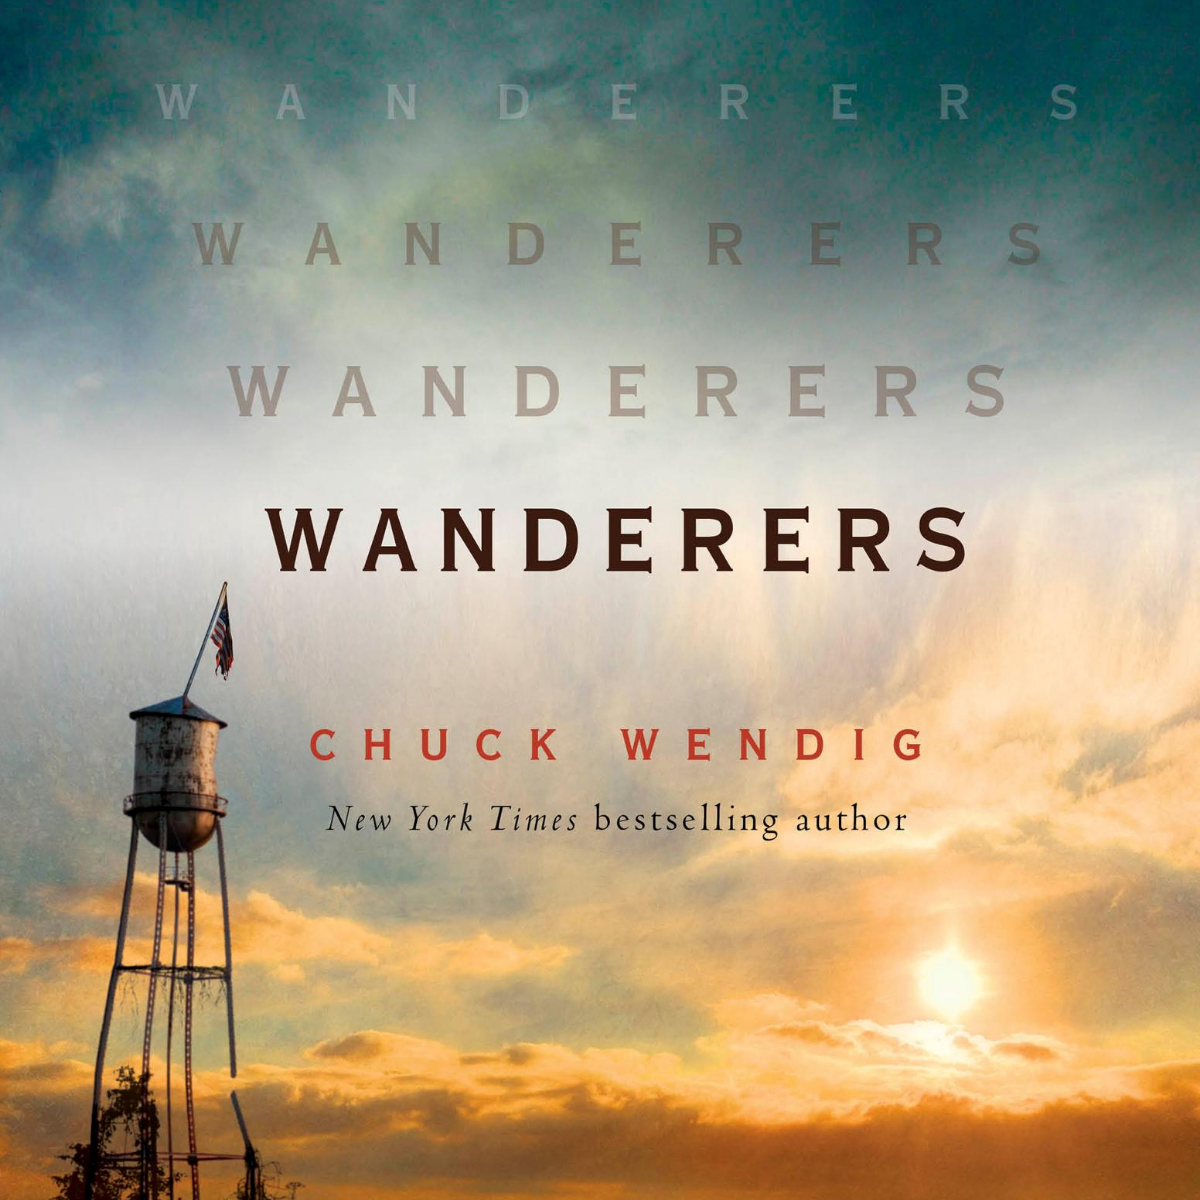 Wanderers TV series grows in vision